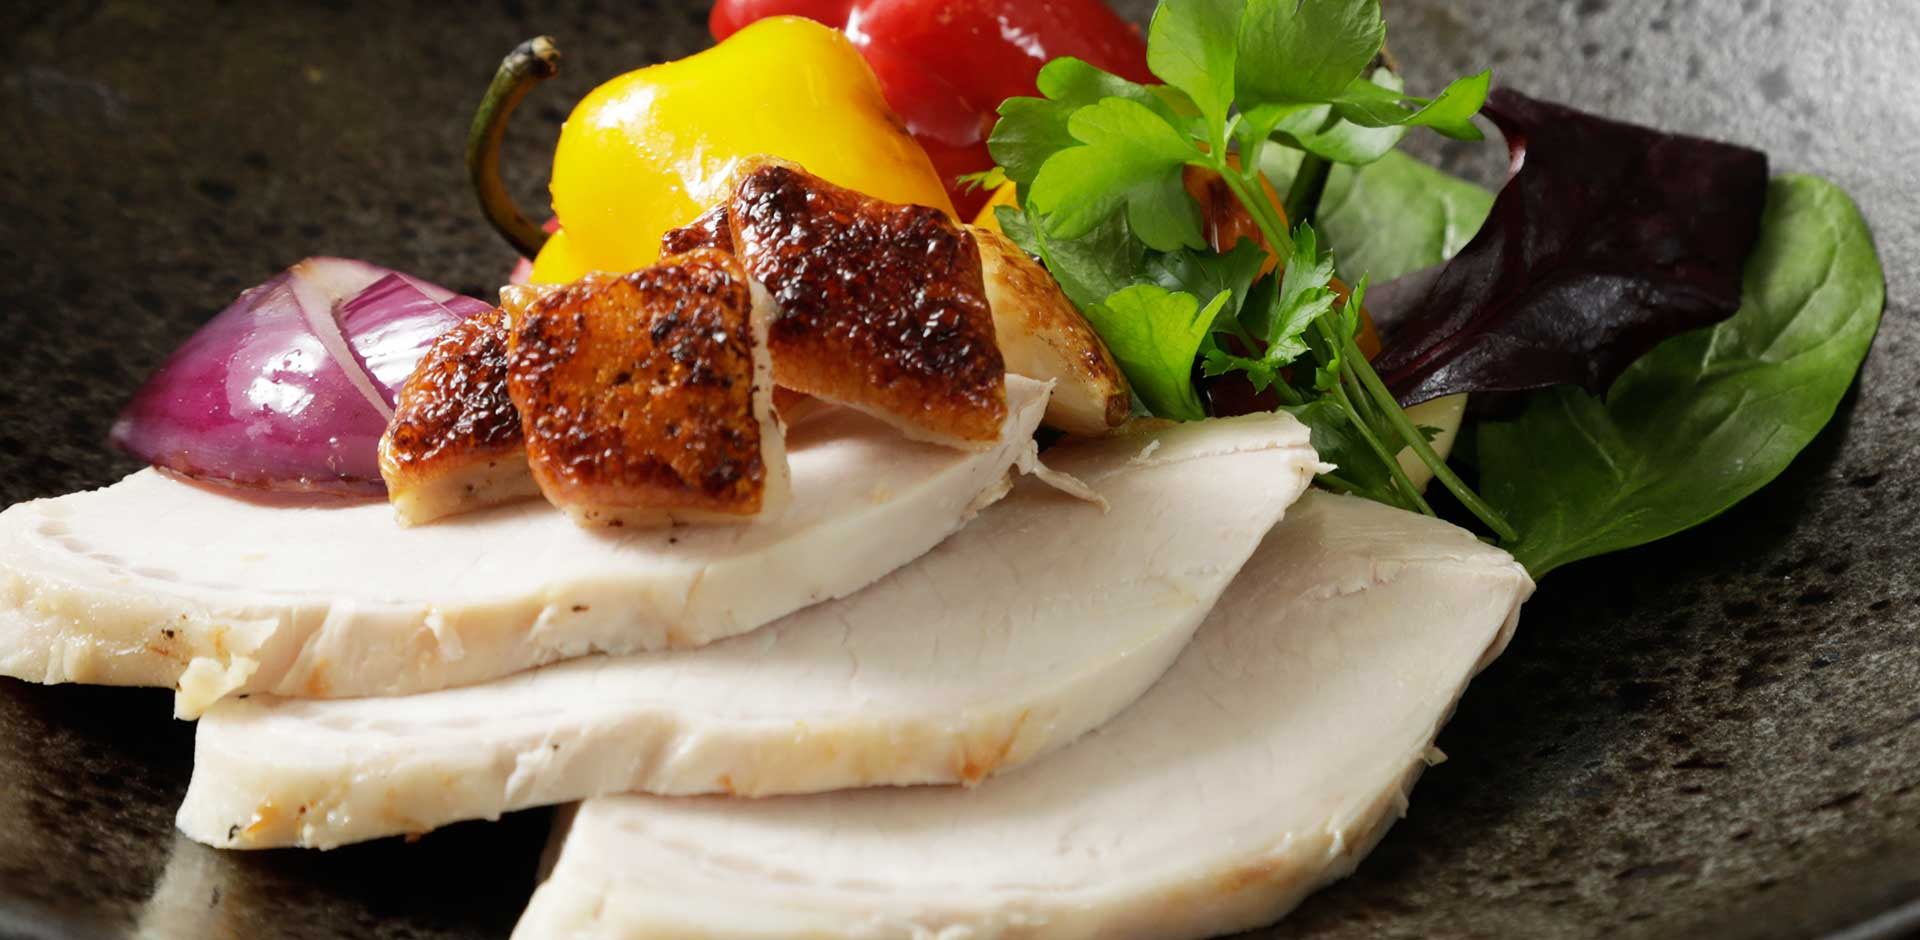 Gourmet dishes professionally prepared